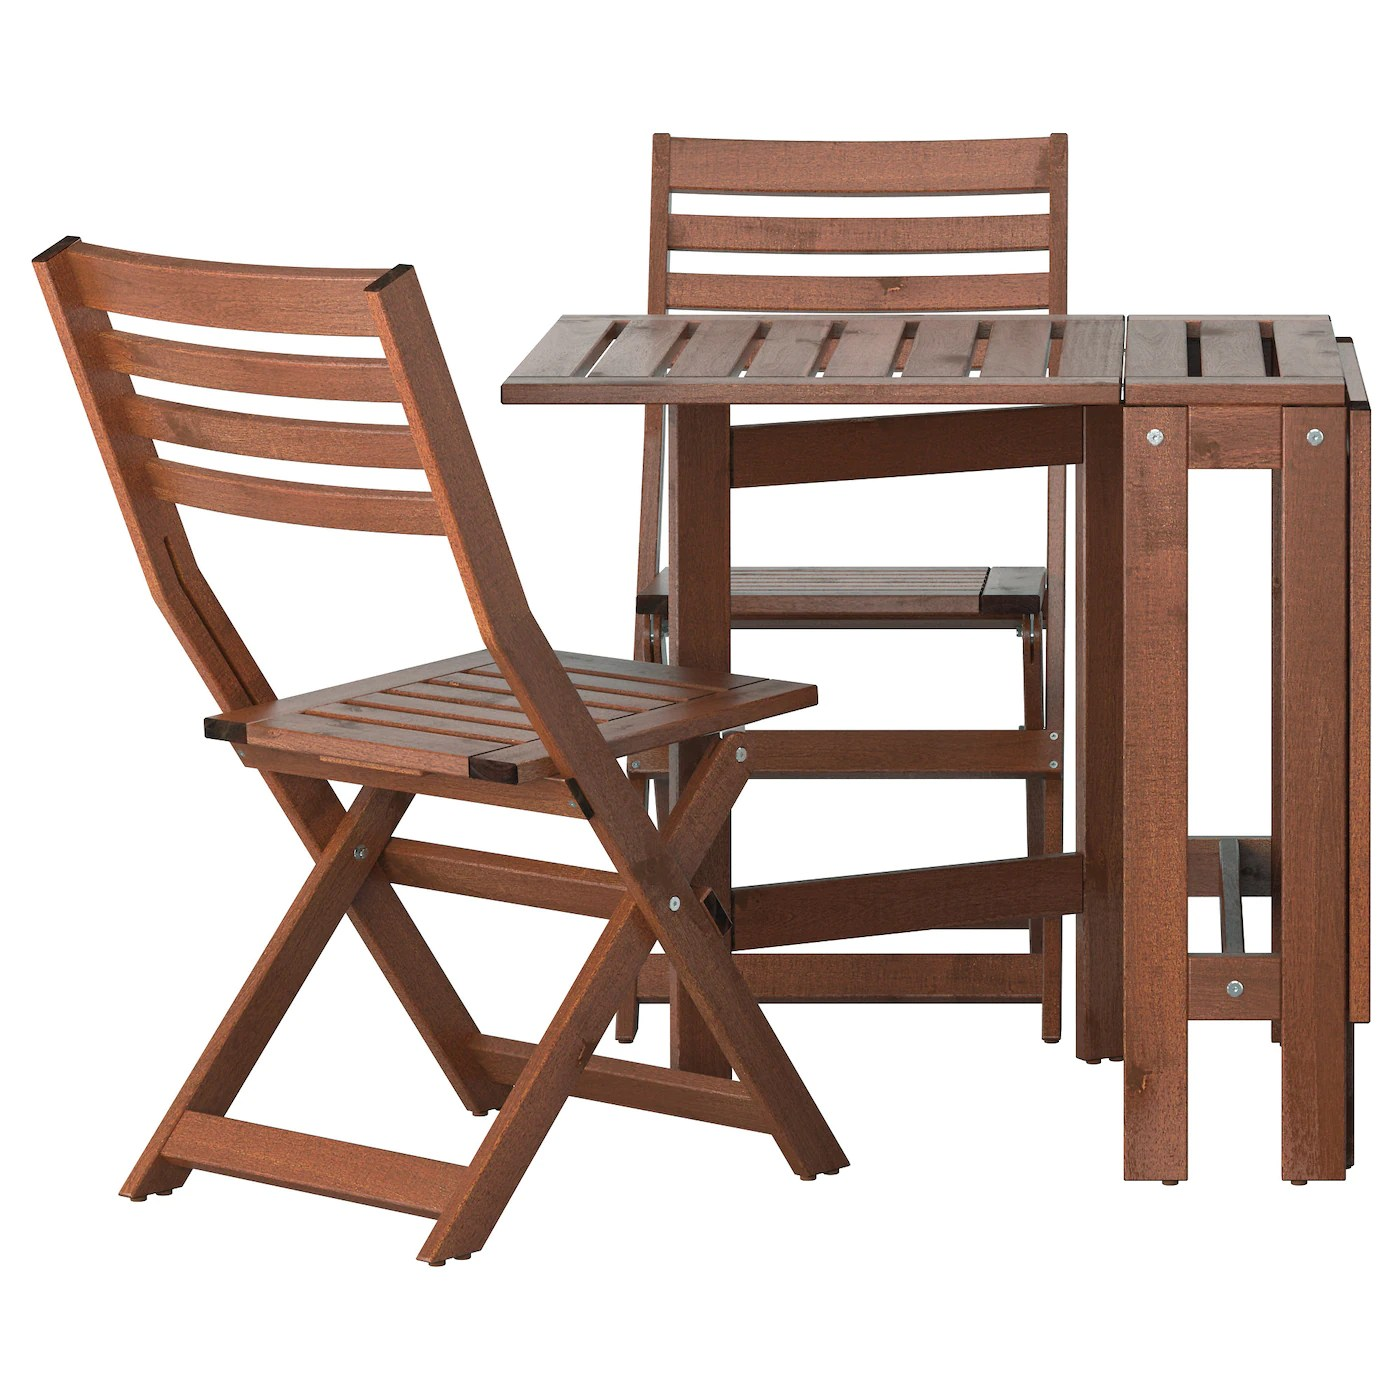 Ikea Outdoor Furniture ÄpplarÖ Table 2 Folding Chairs Outdoor Brown Stained